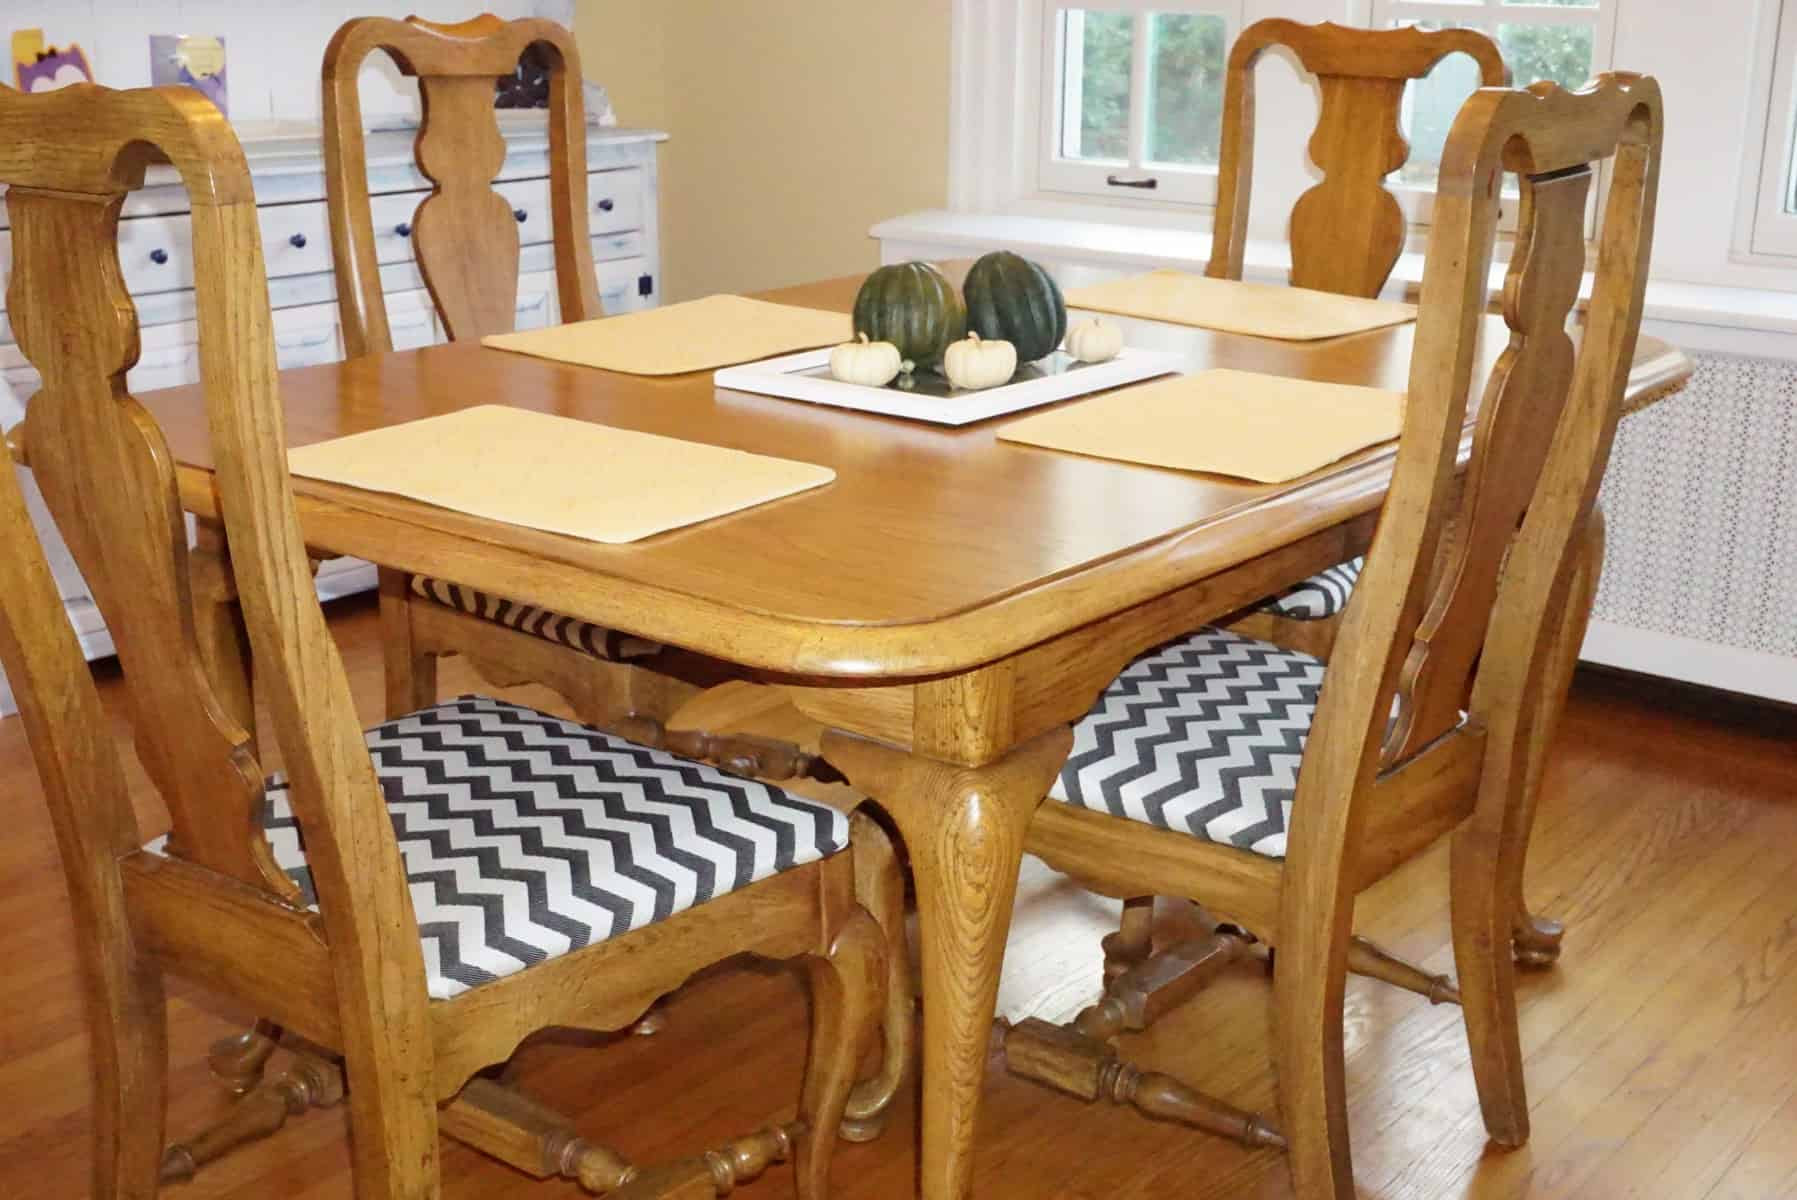 How to Reupholster Dining Room Chair Seat Covers - Sitting ...